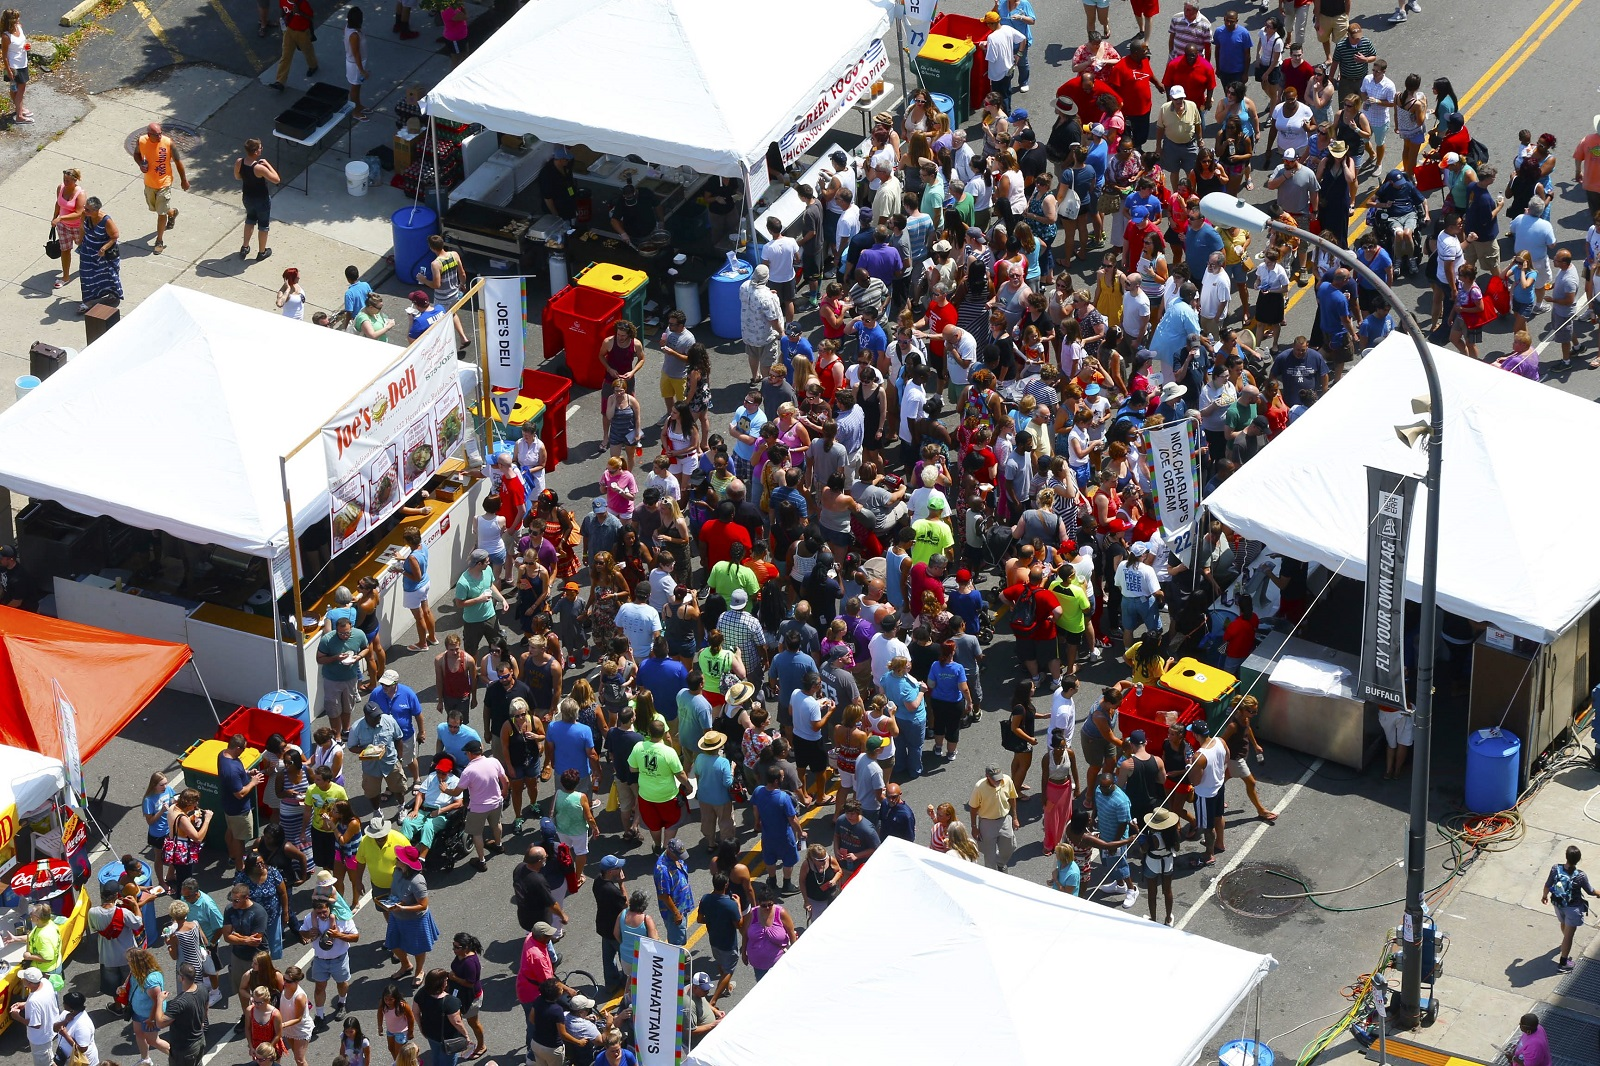 The Taste of Buffalo draws legions of food lovers to stands on Delaware Avenue each summer. (Robert Kirkham/News file photo)